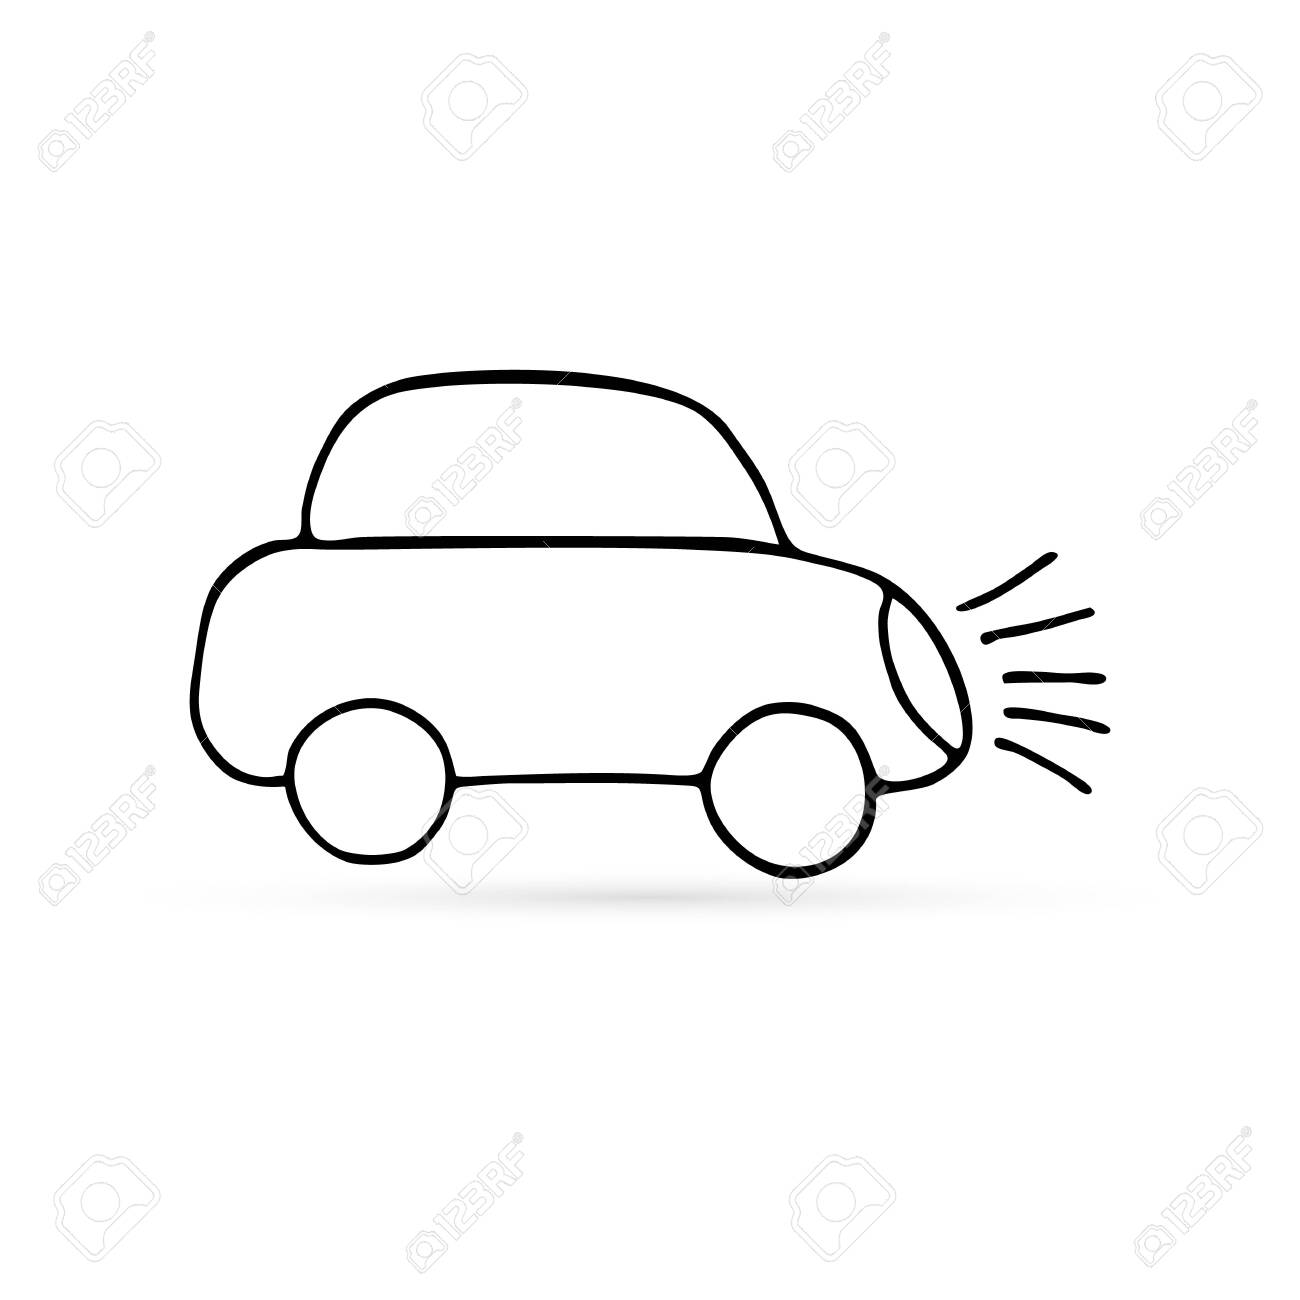 abstract car line icon isolated on white, sketch kids hand drawing art line, vector illustration - 136236117